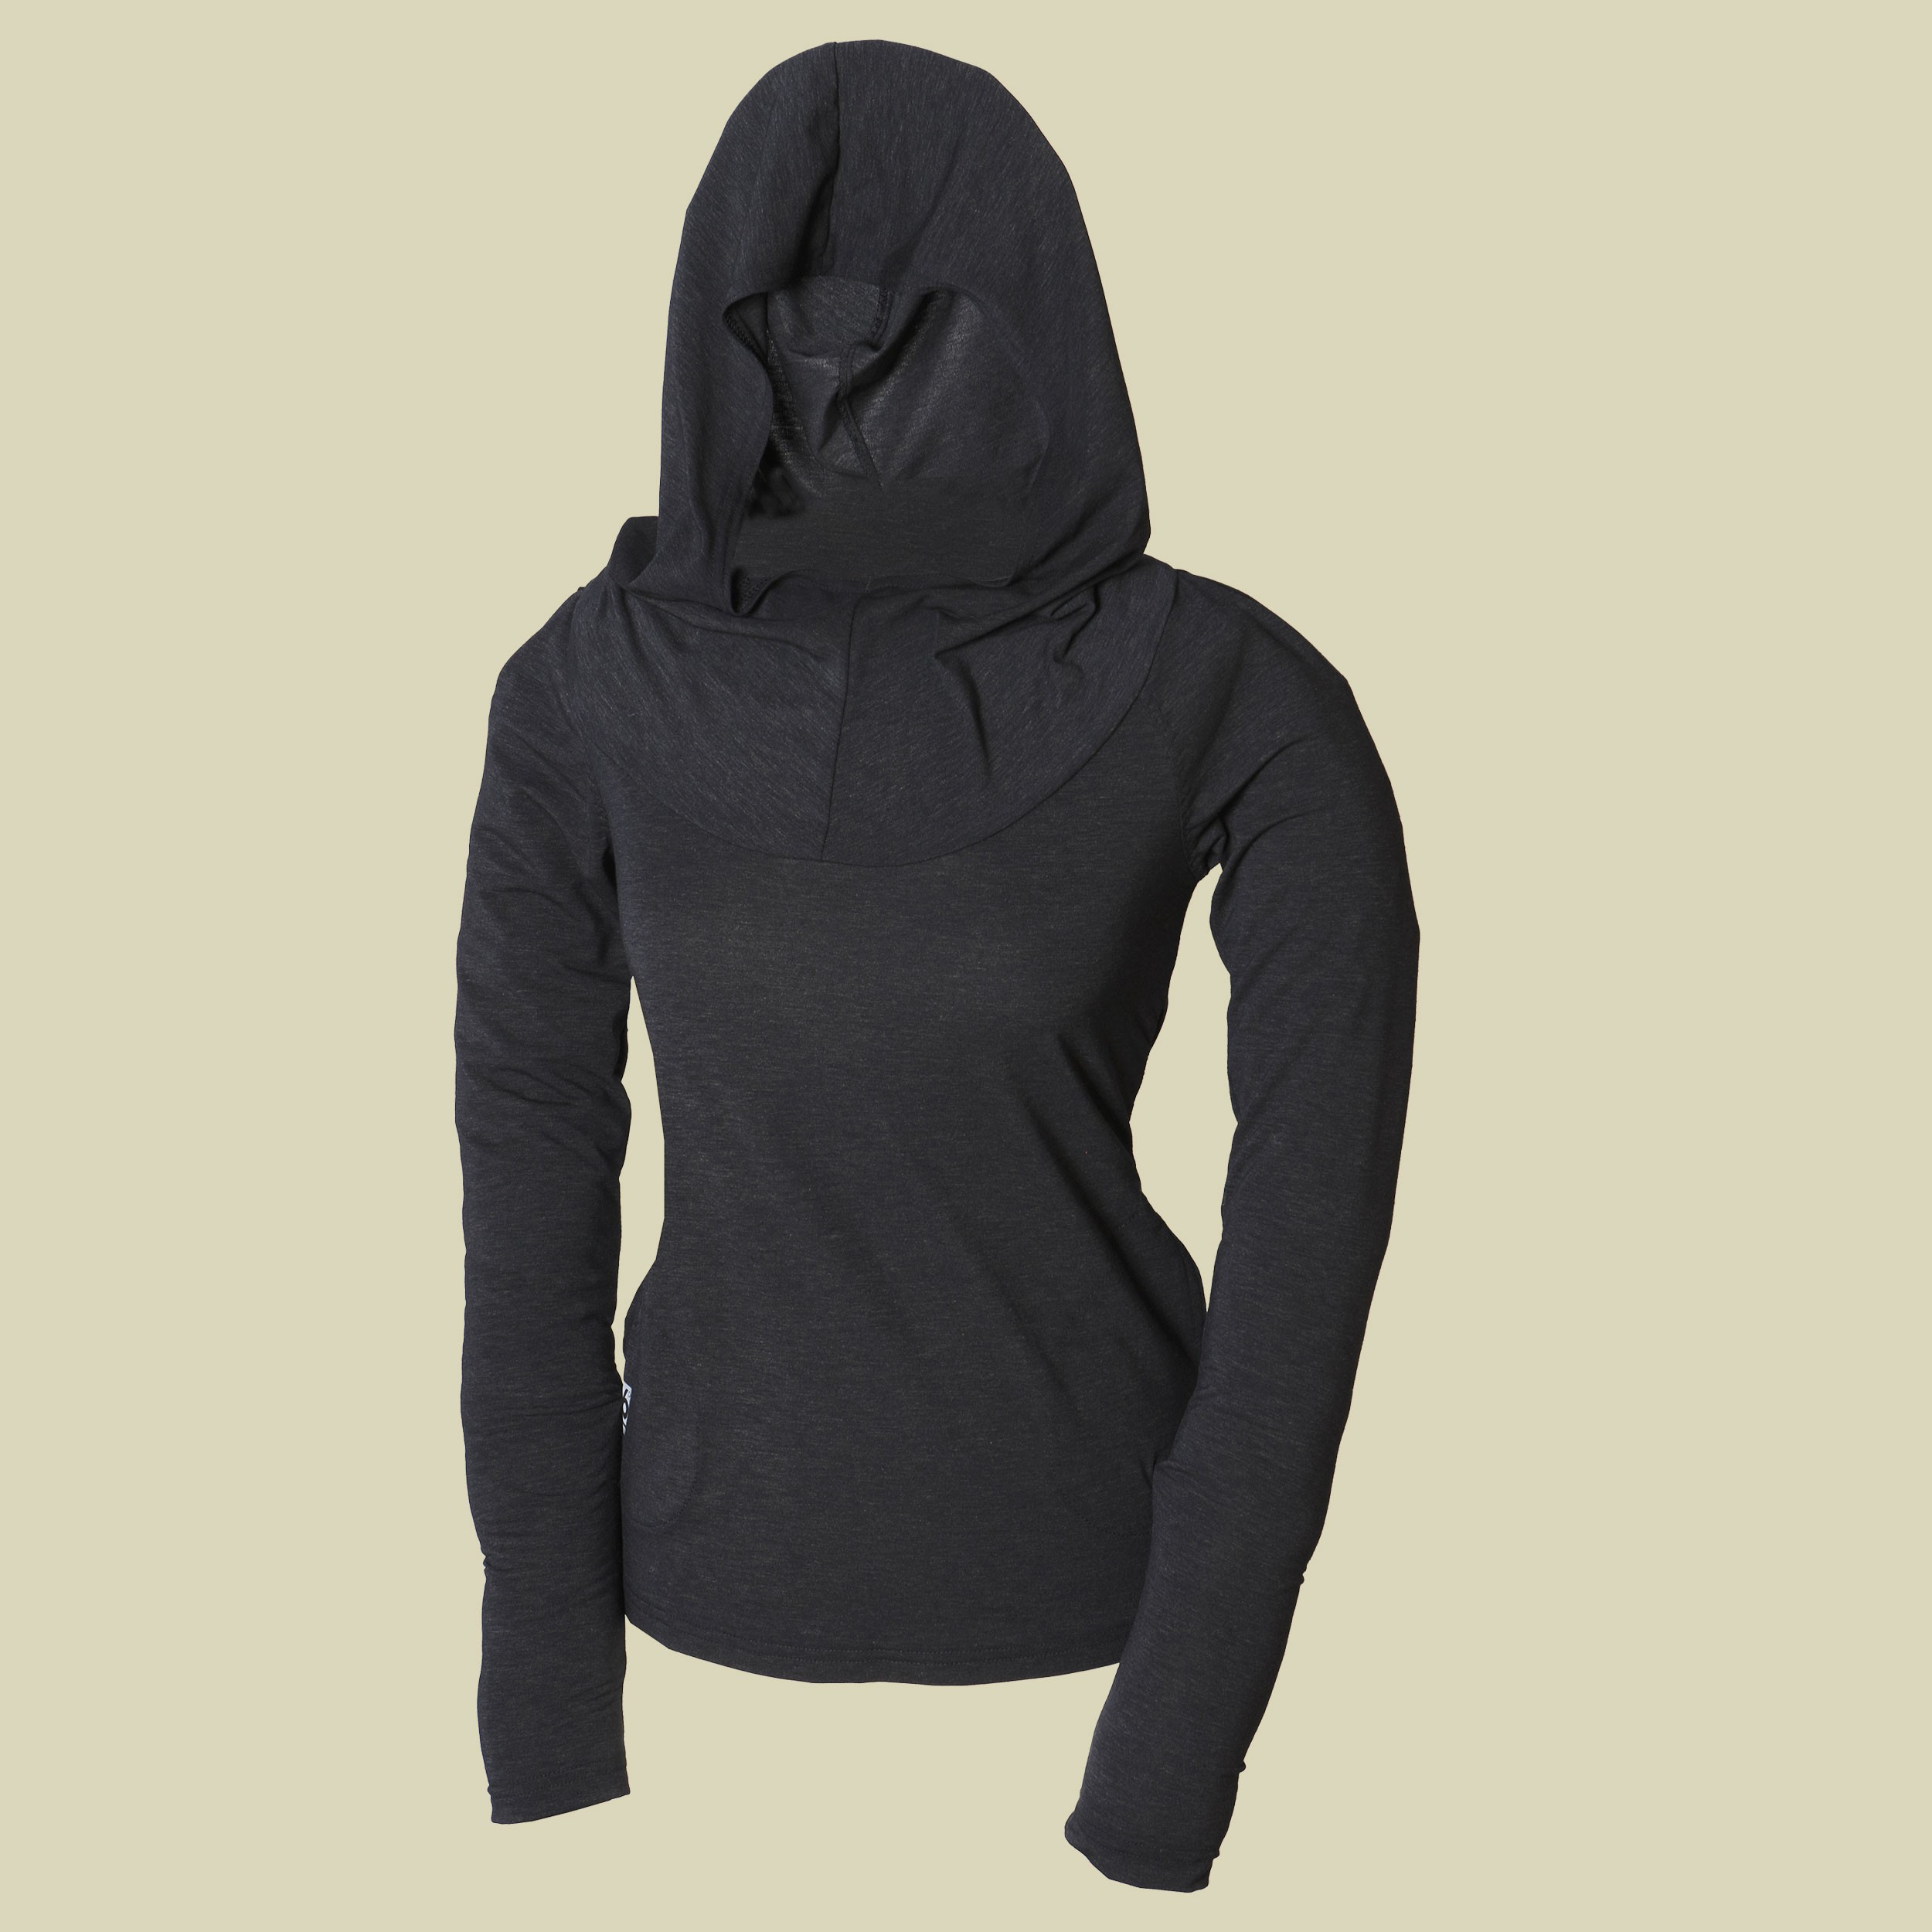 Unnur Hooded Long Sleeve Women